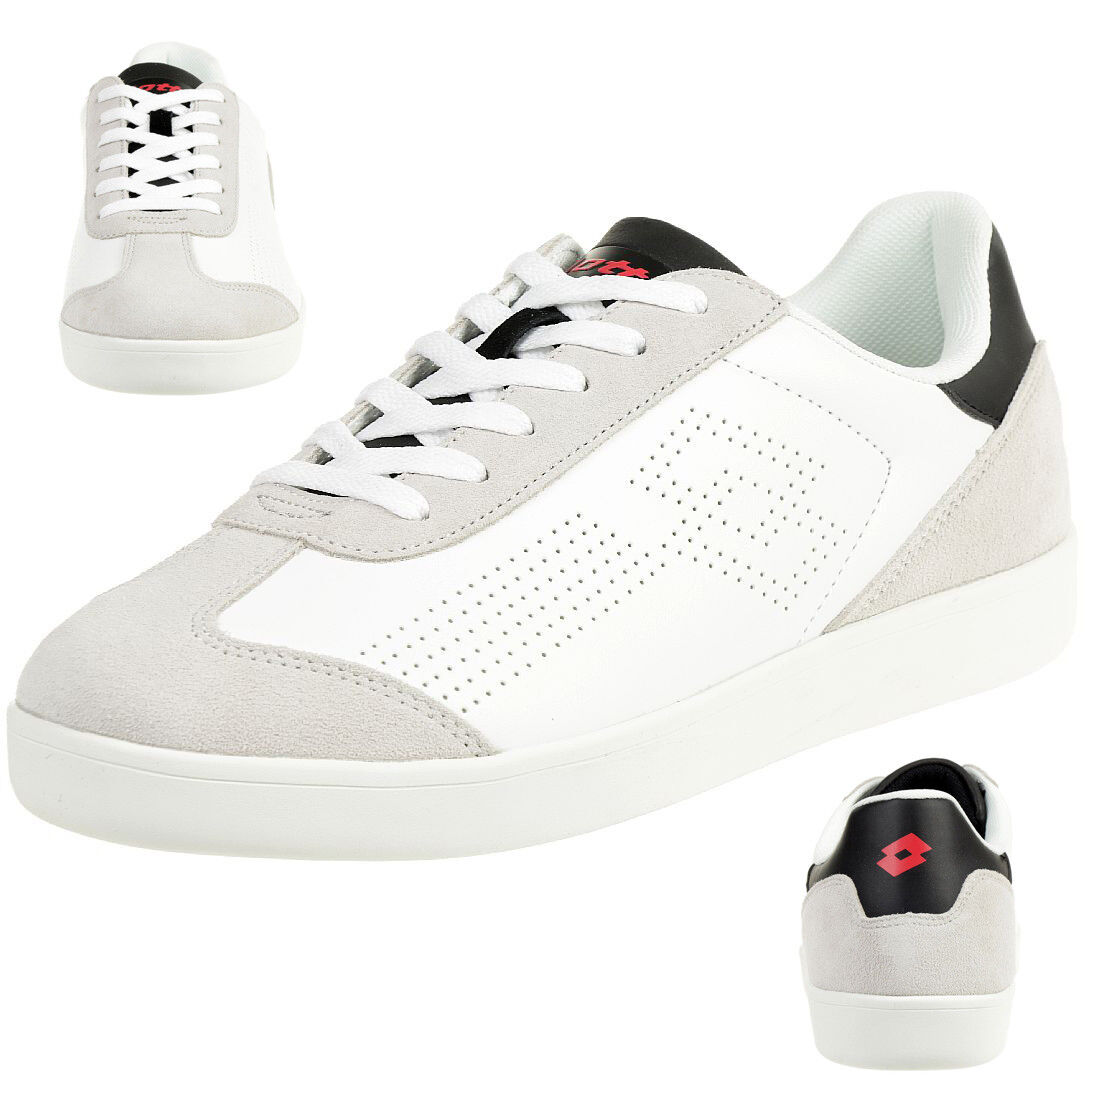 Lotto Trophy Lth Men's Sneakers T7148 Leather White